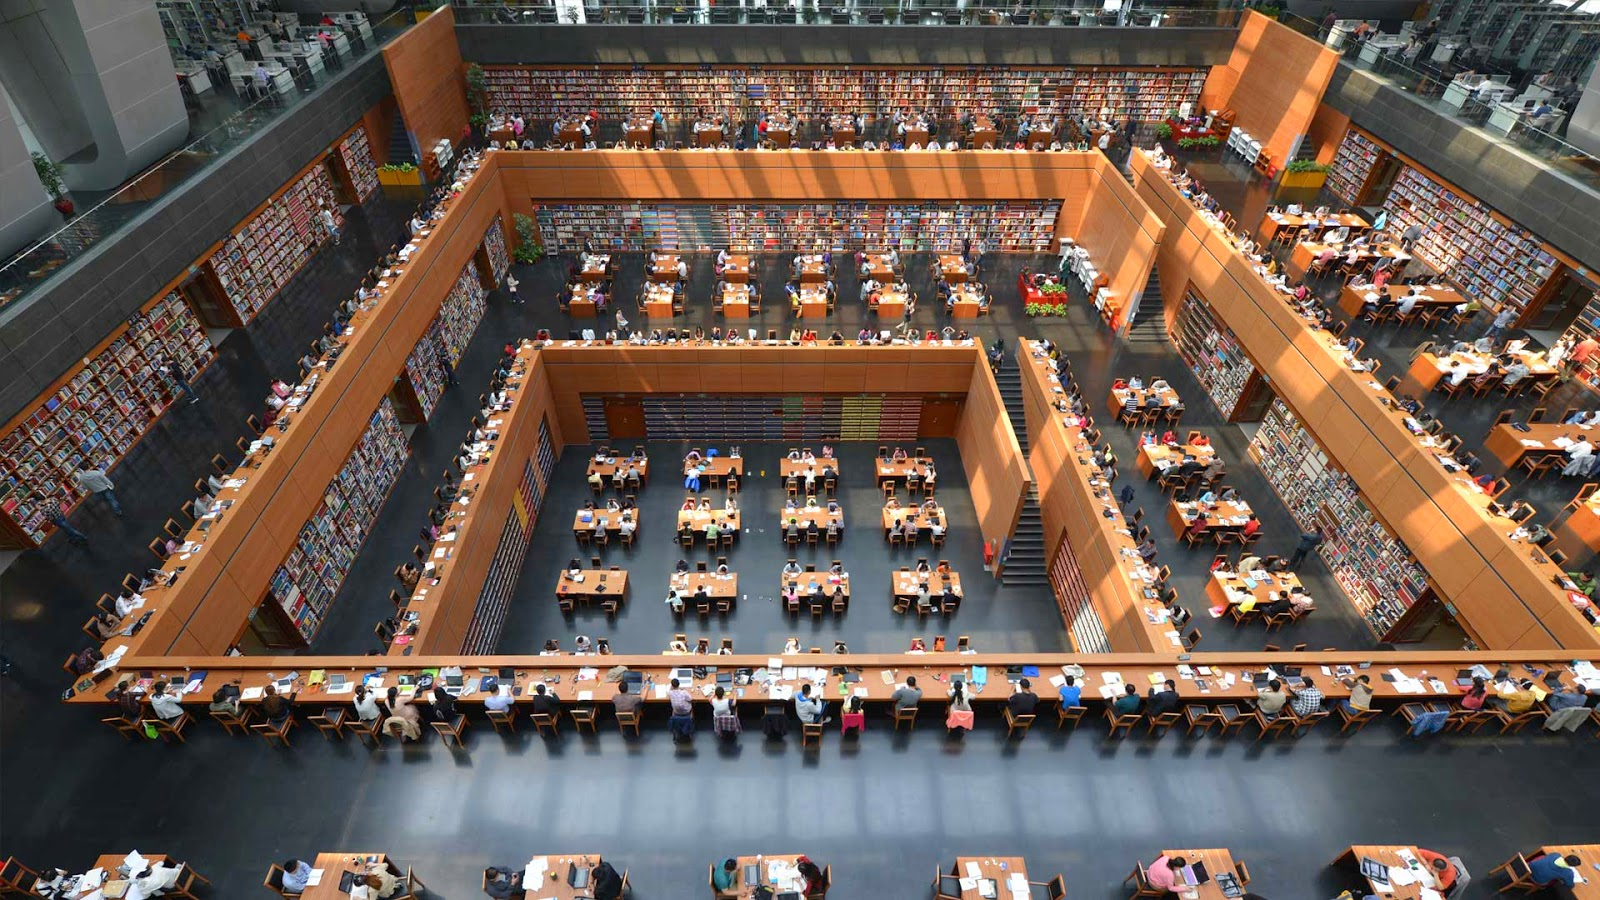 Interior of the National Library of China, Beijing